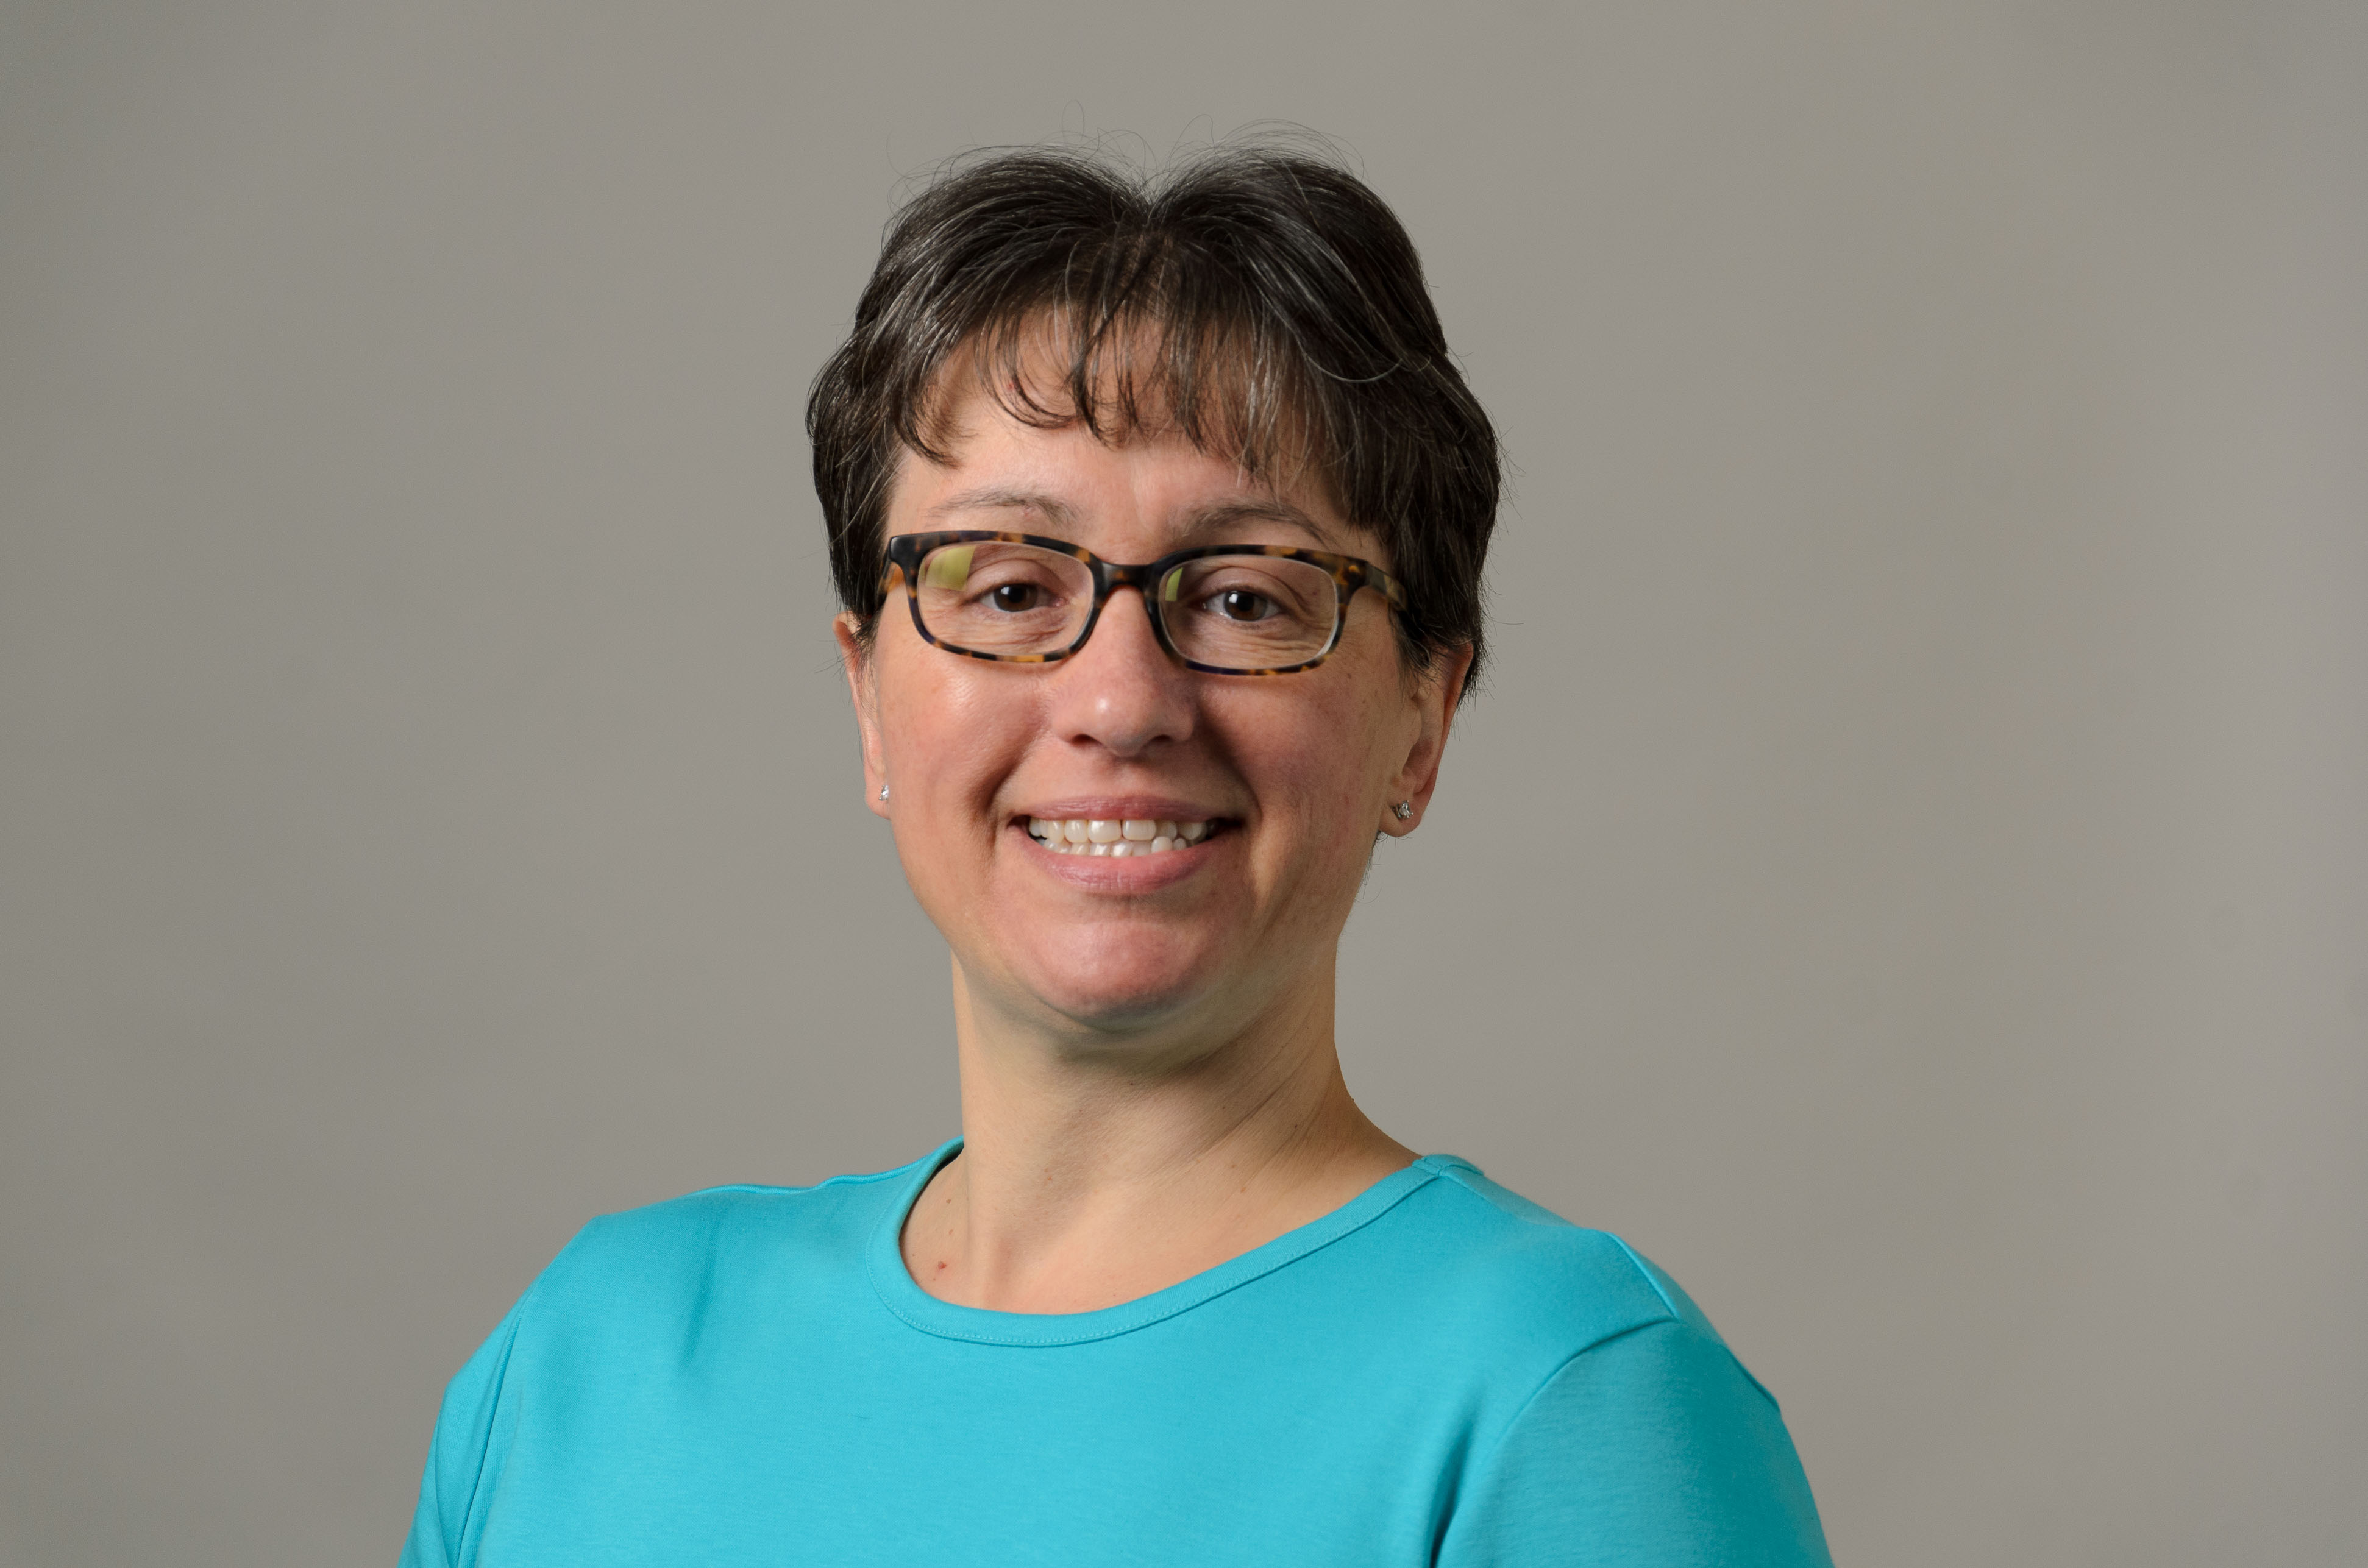 Headshot of Cheryl Lebeau Radzvilowicz. Teal shirt and glasses.